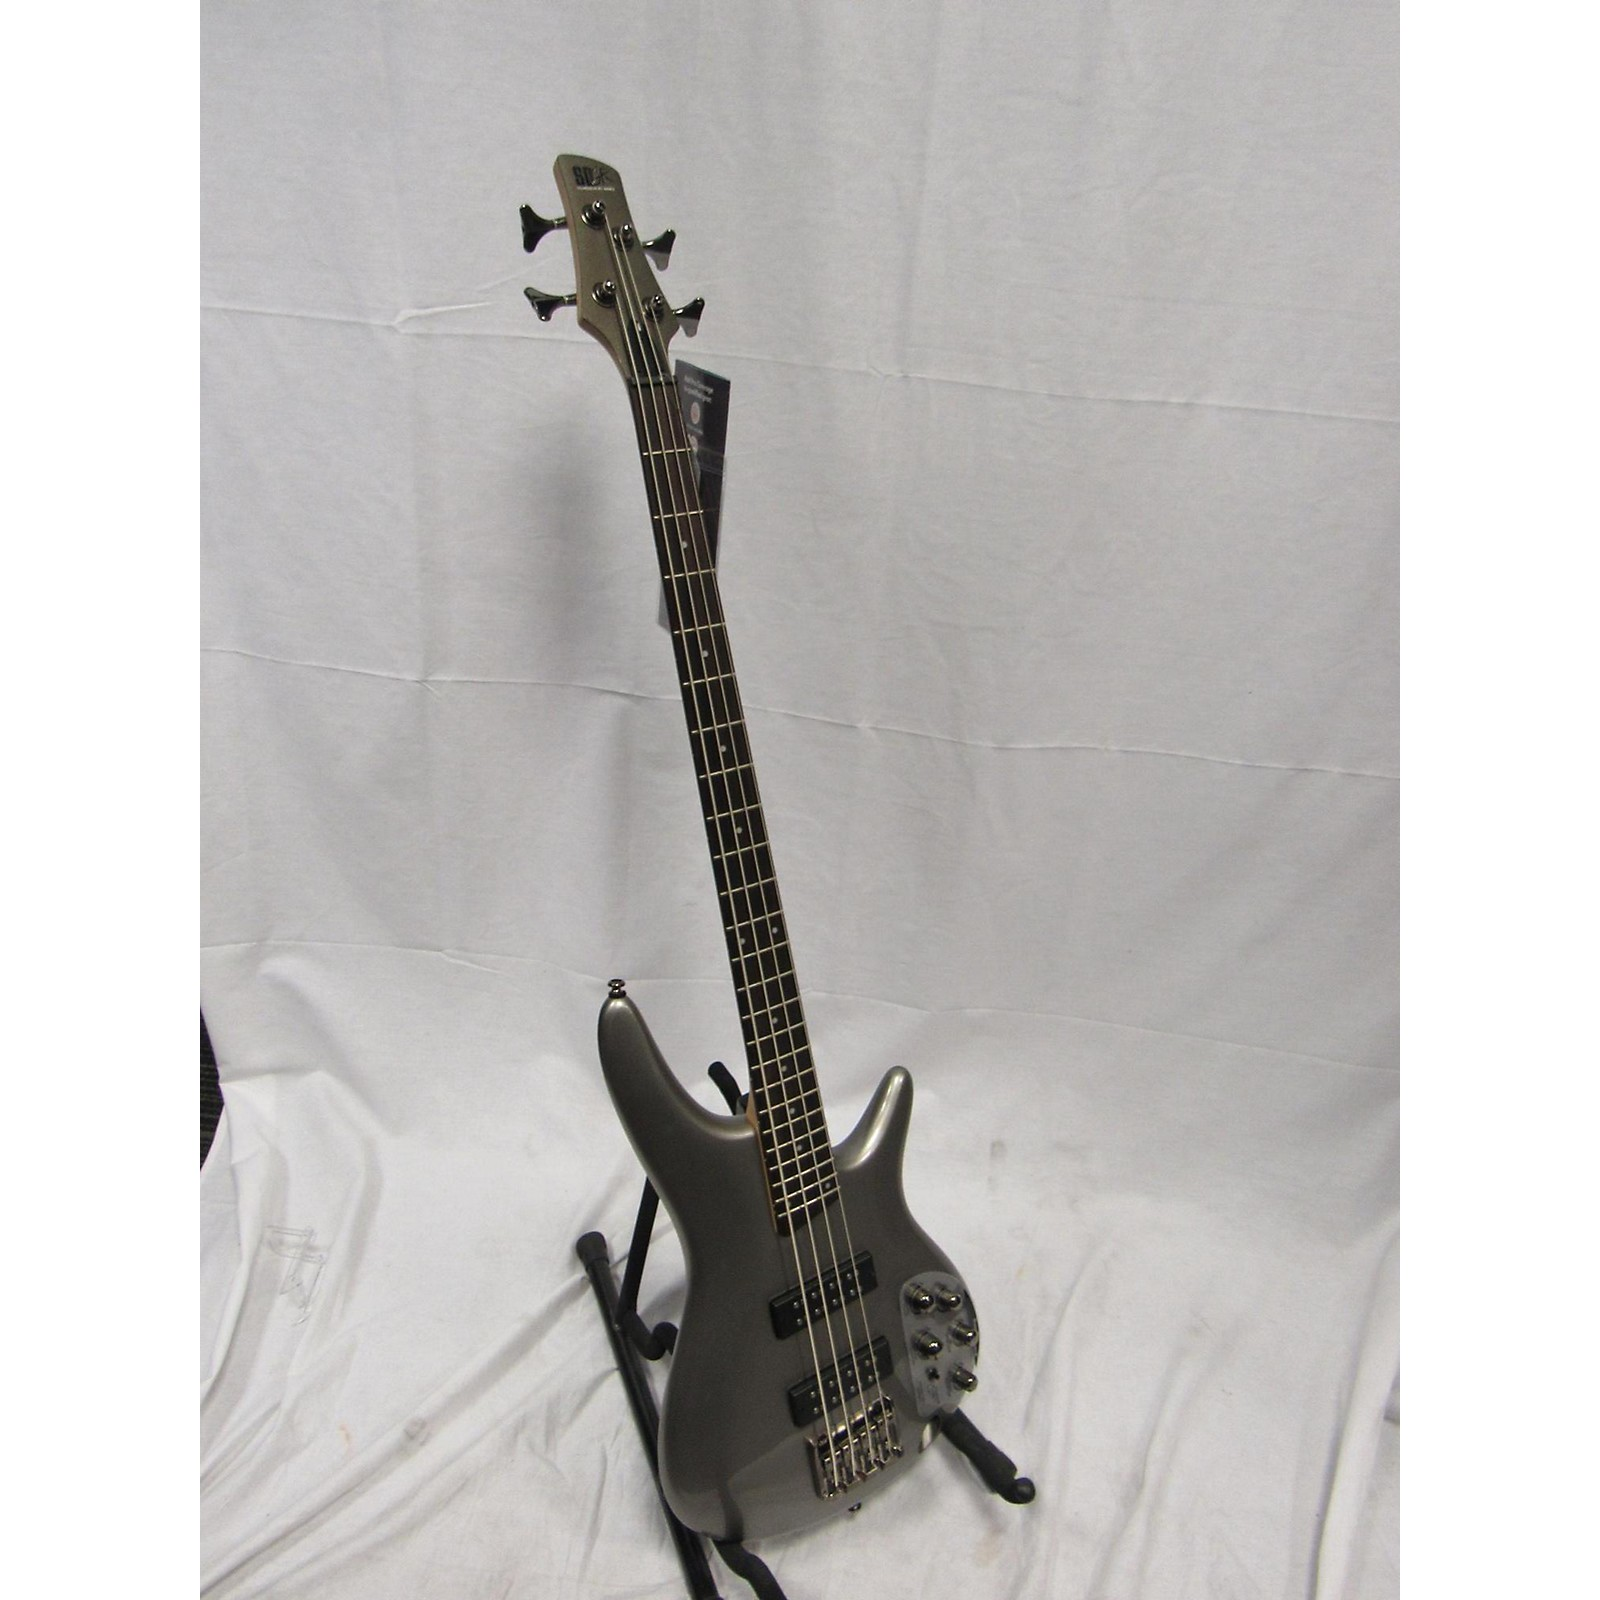 Ibanez SR300 Electric Bass Guitar